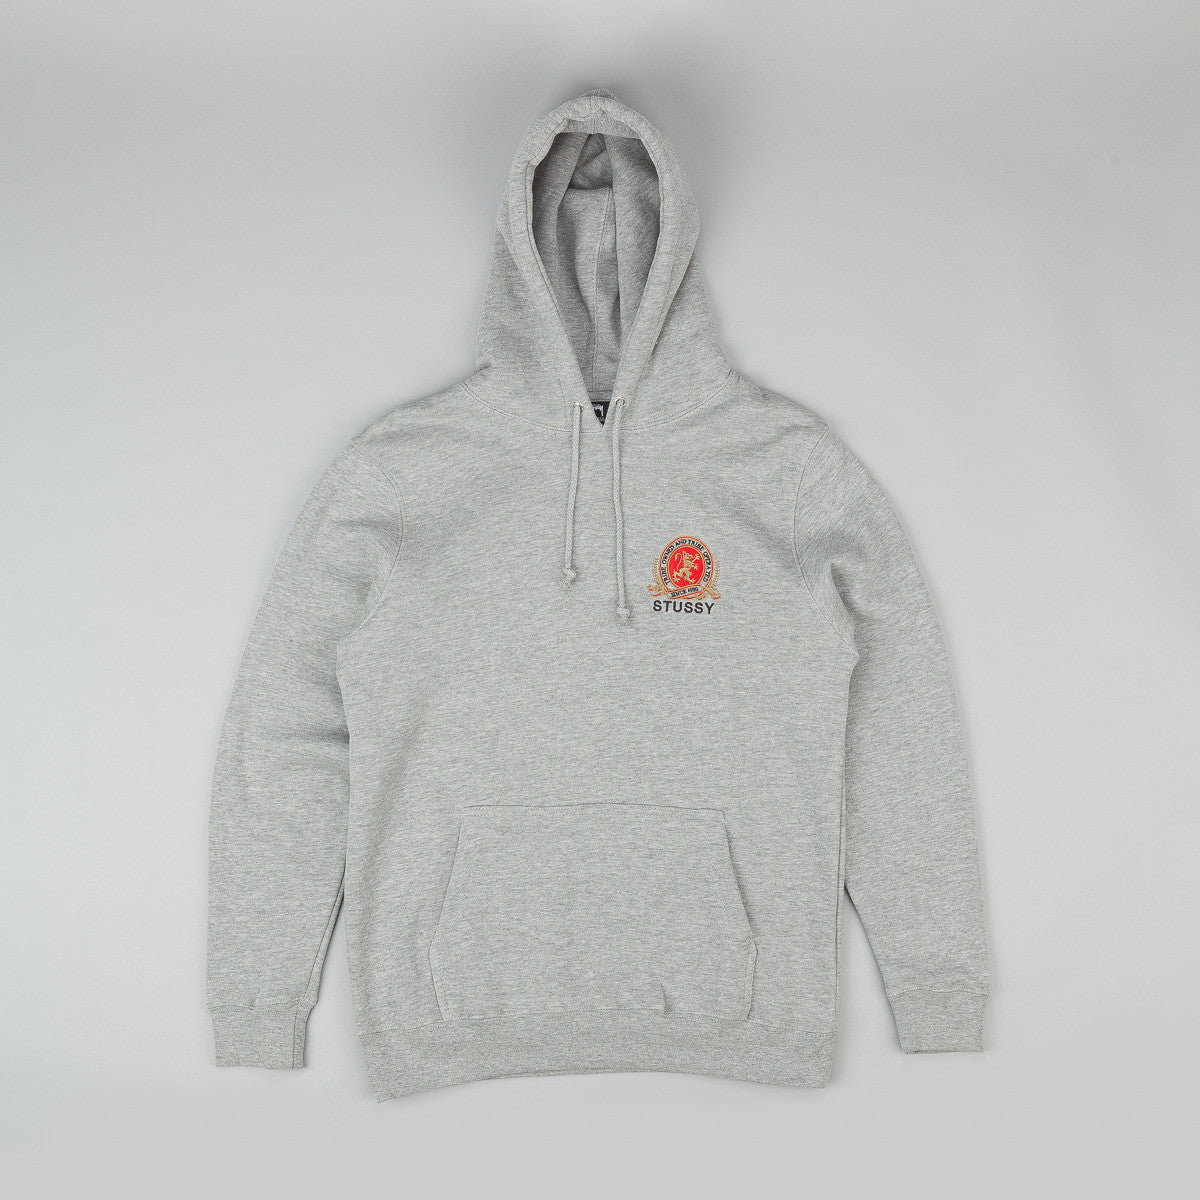 Stussy Tribe Owned Hooded Sweatshirt